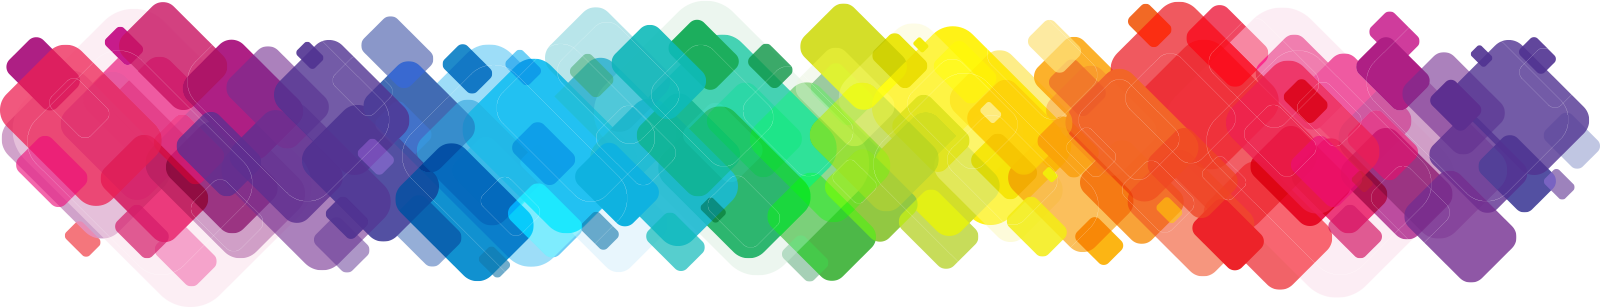 A repeating pattern of shifting colors represents the multiple  mobile screens that unite at the event .Each conference has a  distinguishing  color palette.